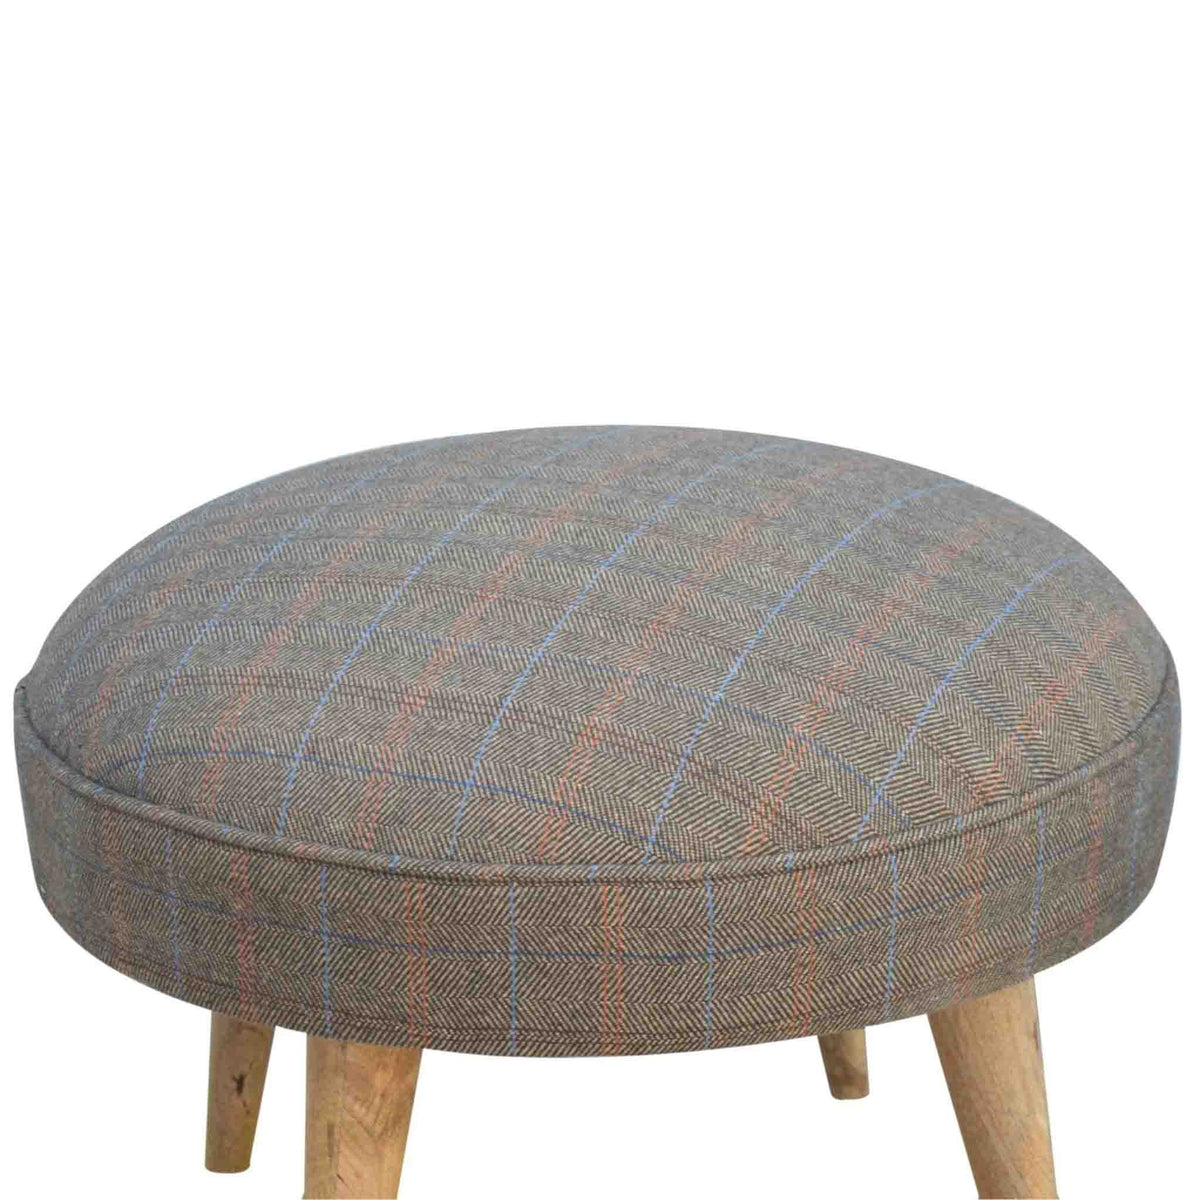 Close up of The Multi Tweed Round Foot Stool